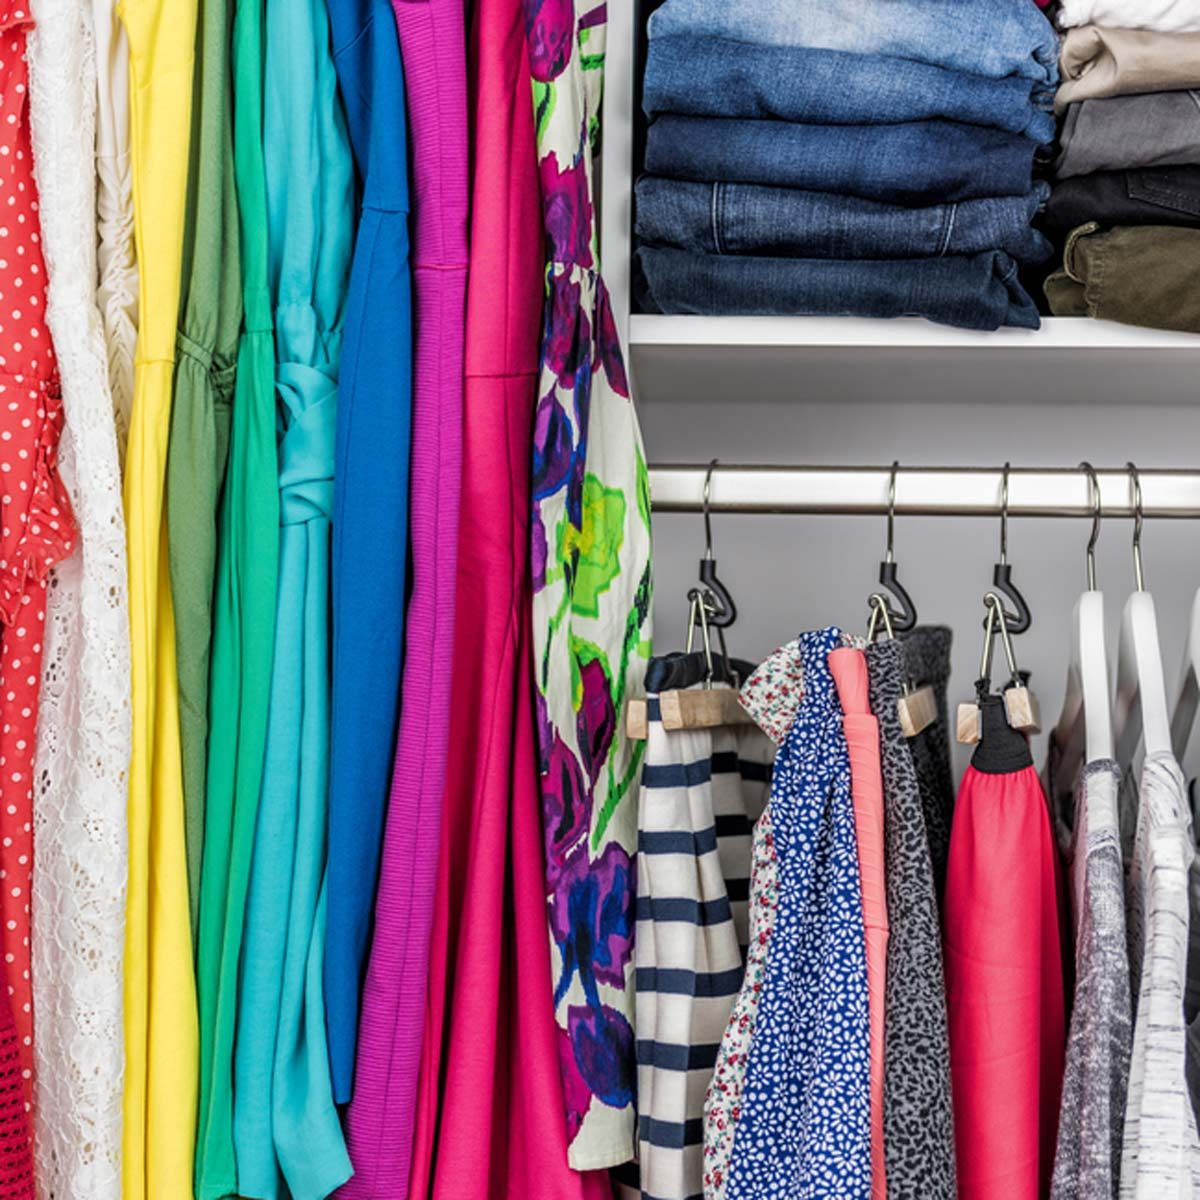 12 Awesome Closet Storage Hacks The Family Handyman,Where To Hang Curtains With Craftsman Trim